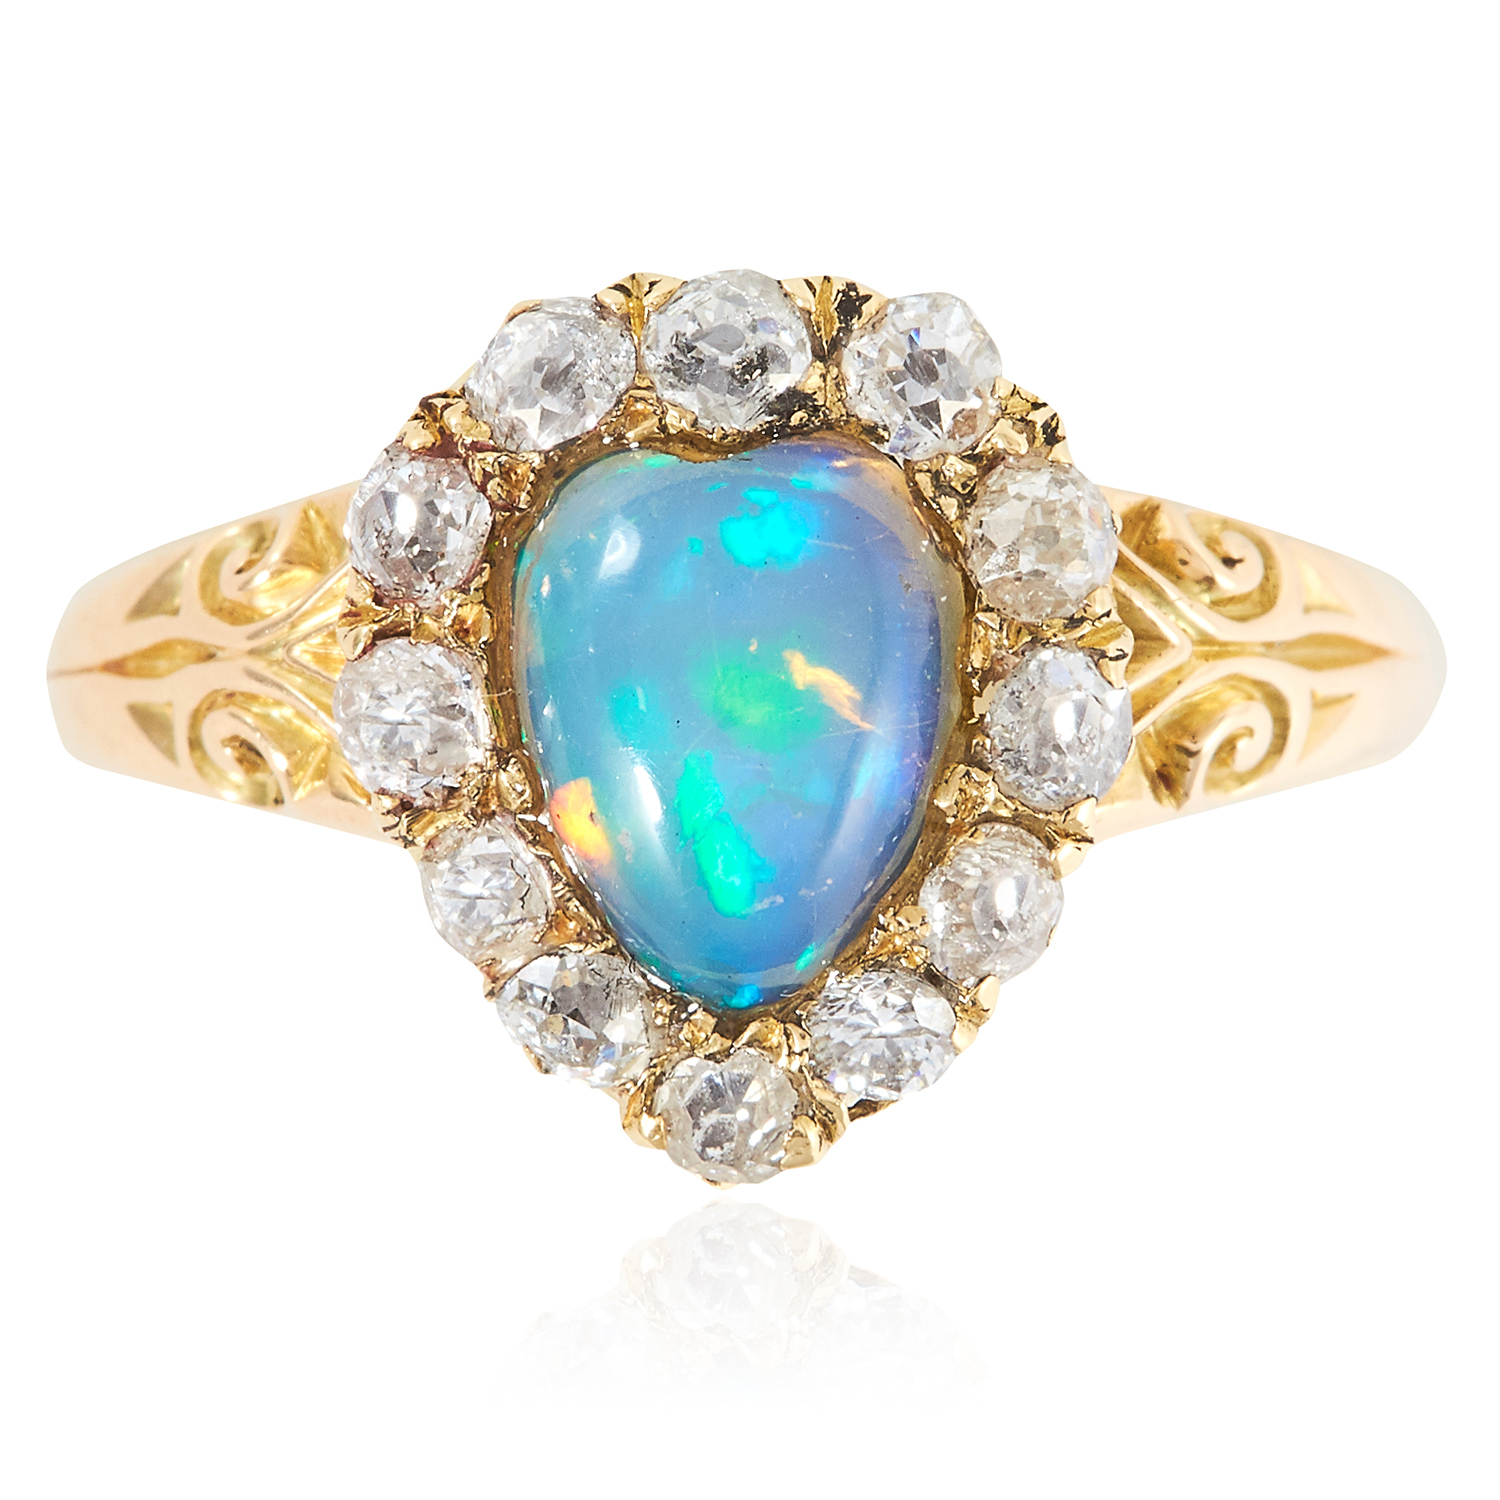 Los 60 - AN ANTIQUE OPAL AND DIAMOND CLUSTER RING, 19TH CENTURY in high carat yellow gold, the heart shaped